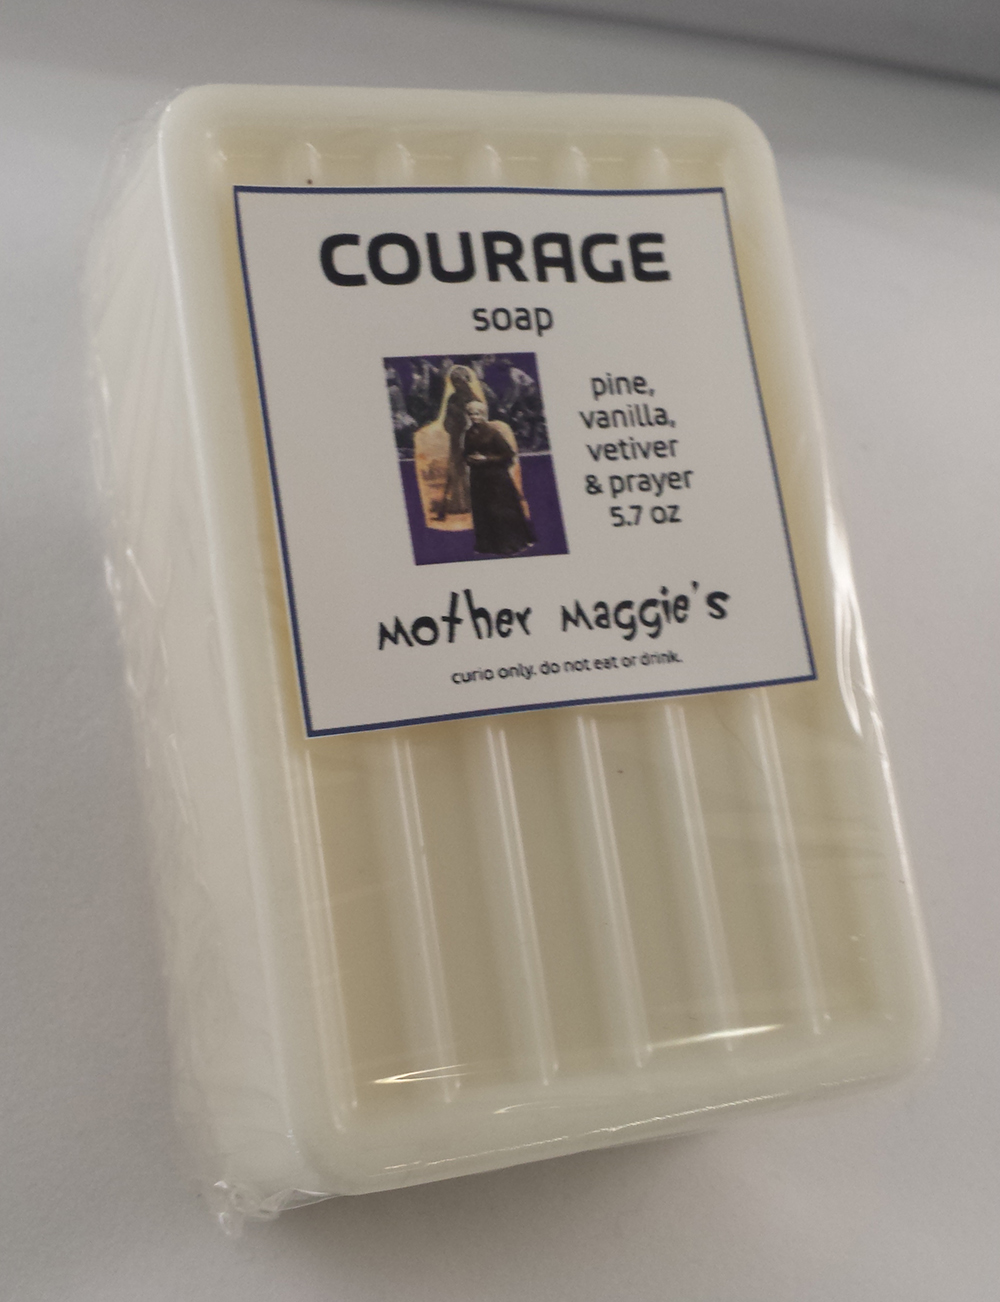 Mother Maggie's Condition Soaps